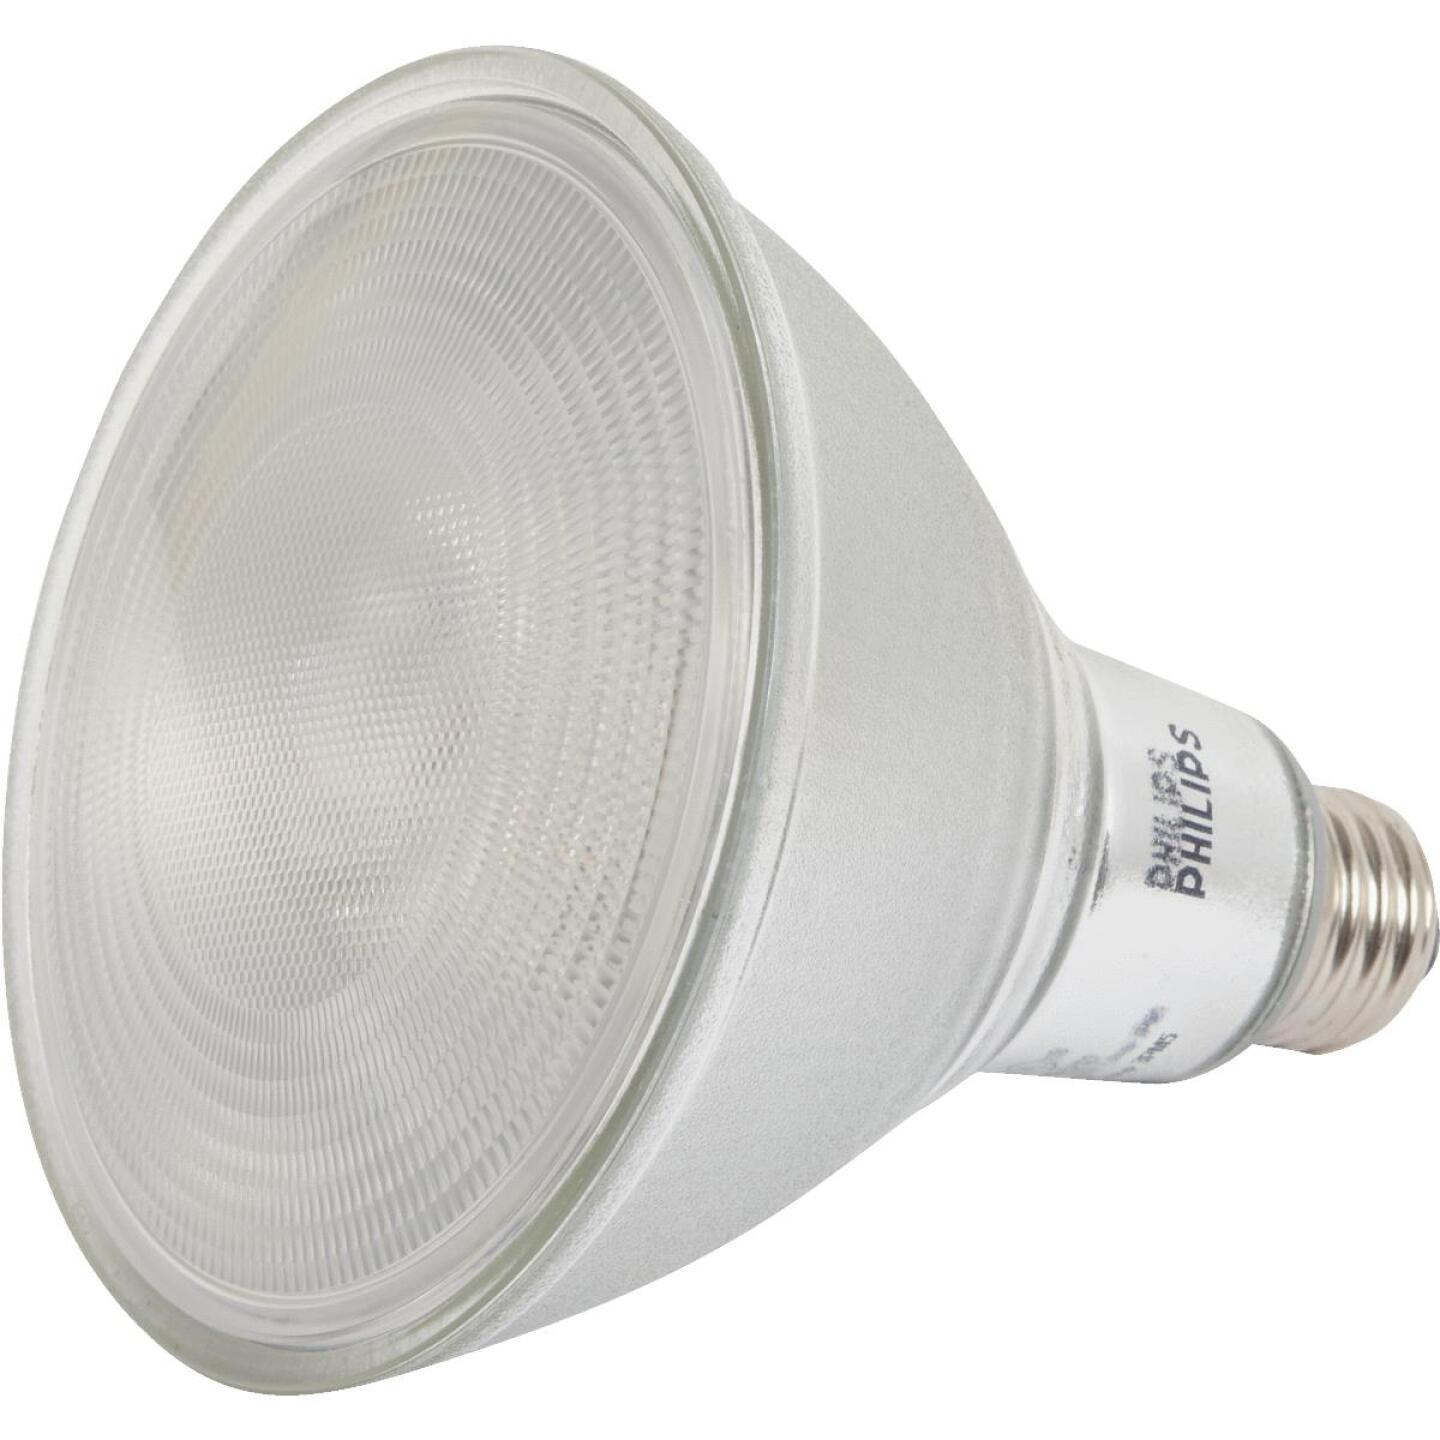 Philips 90W Equivalent Bright White PAR38 Medium Dimmable LED Floodlight Light Bulb Image 1